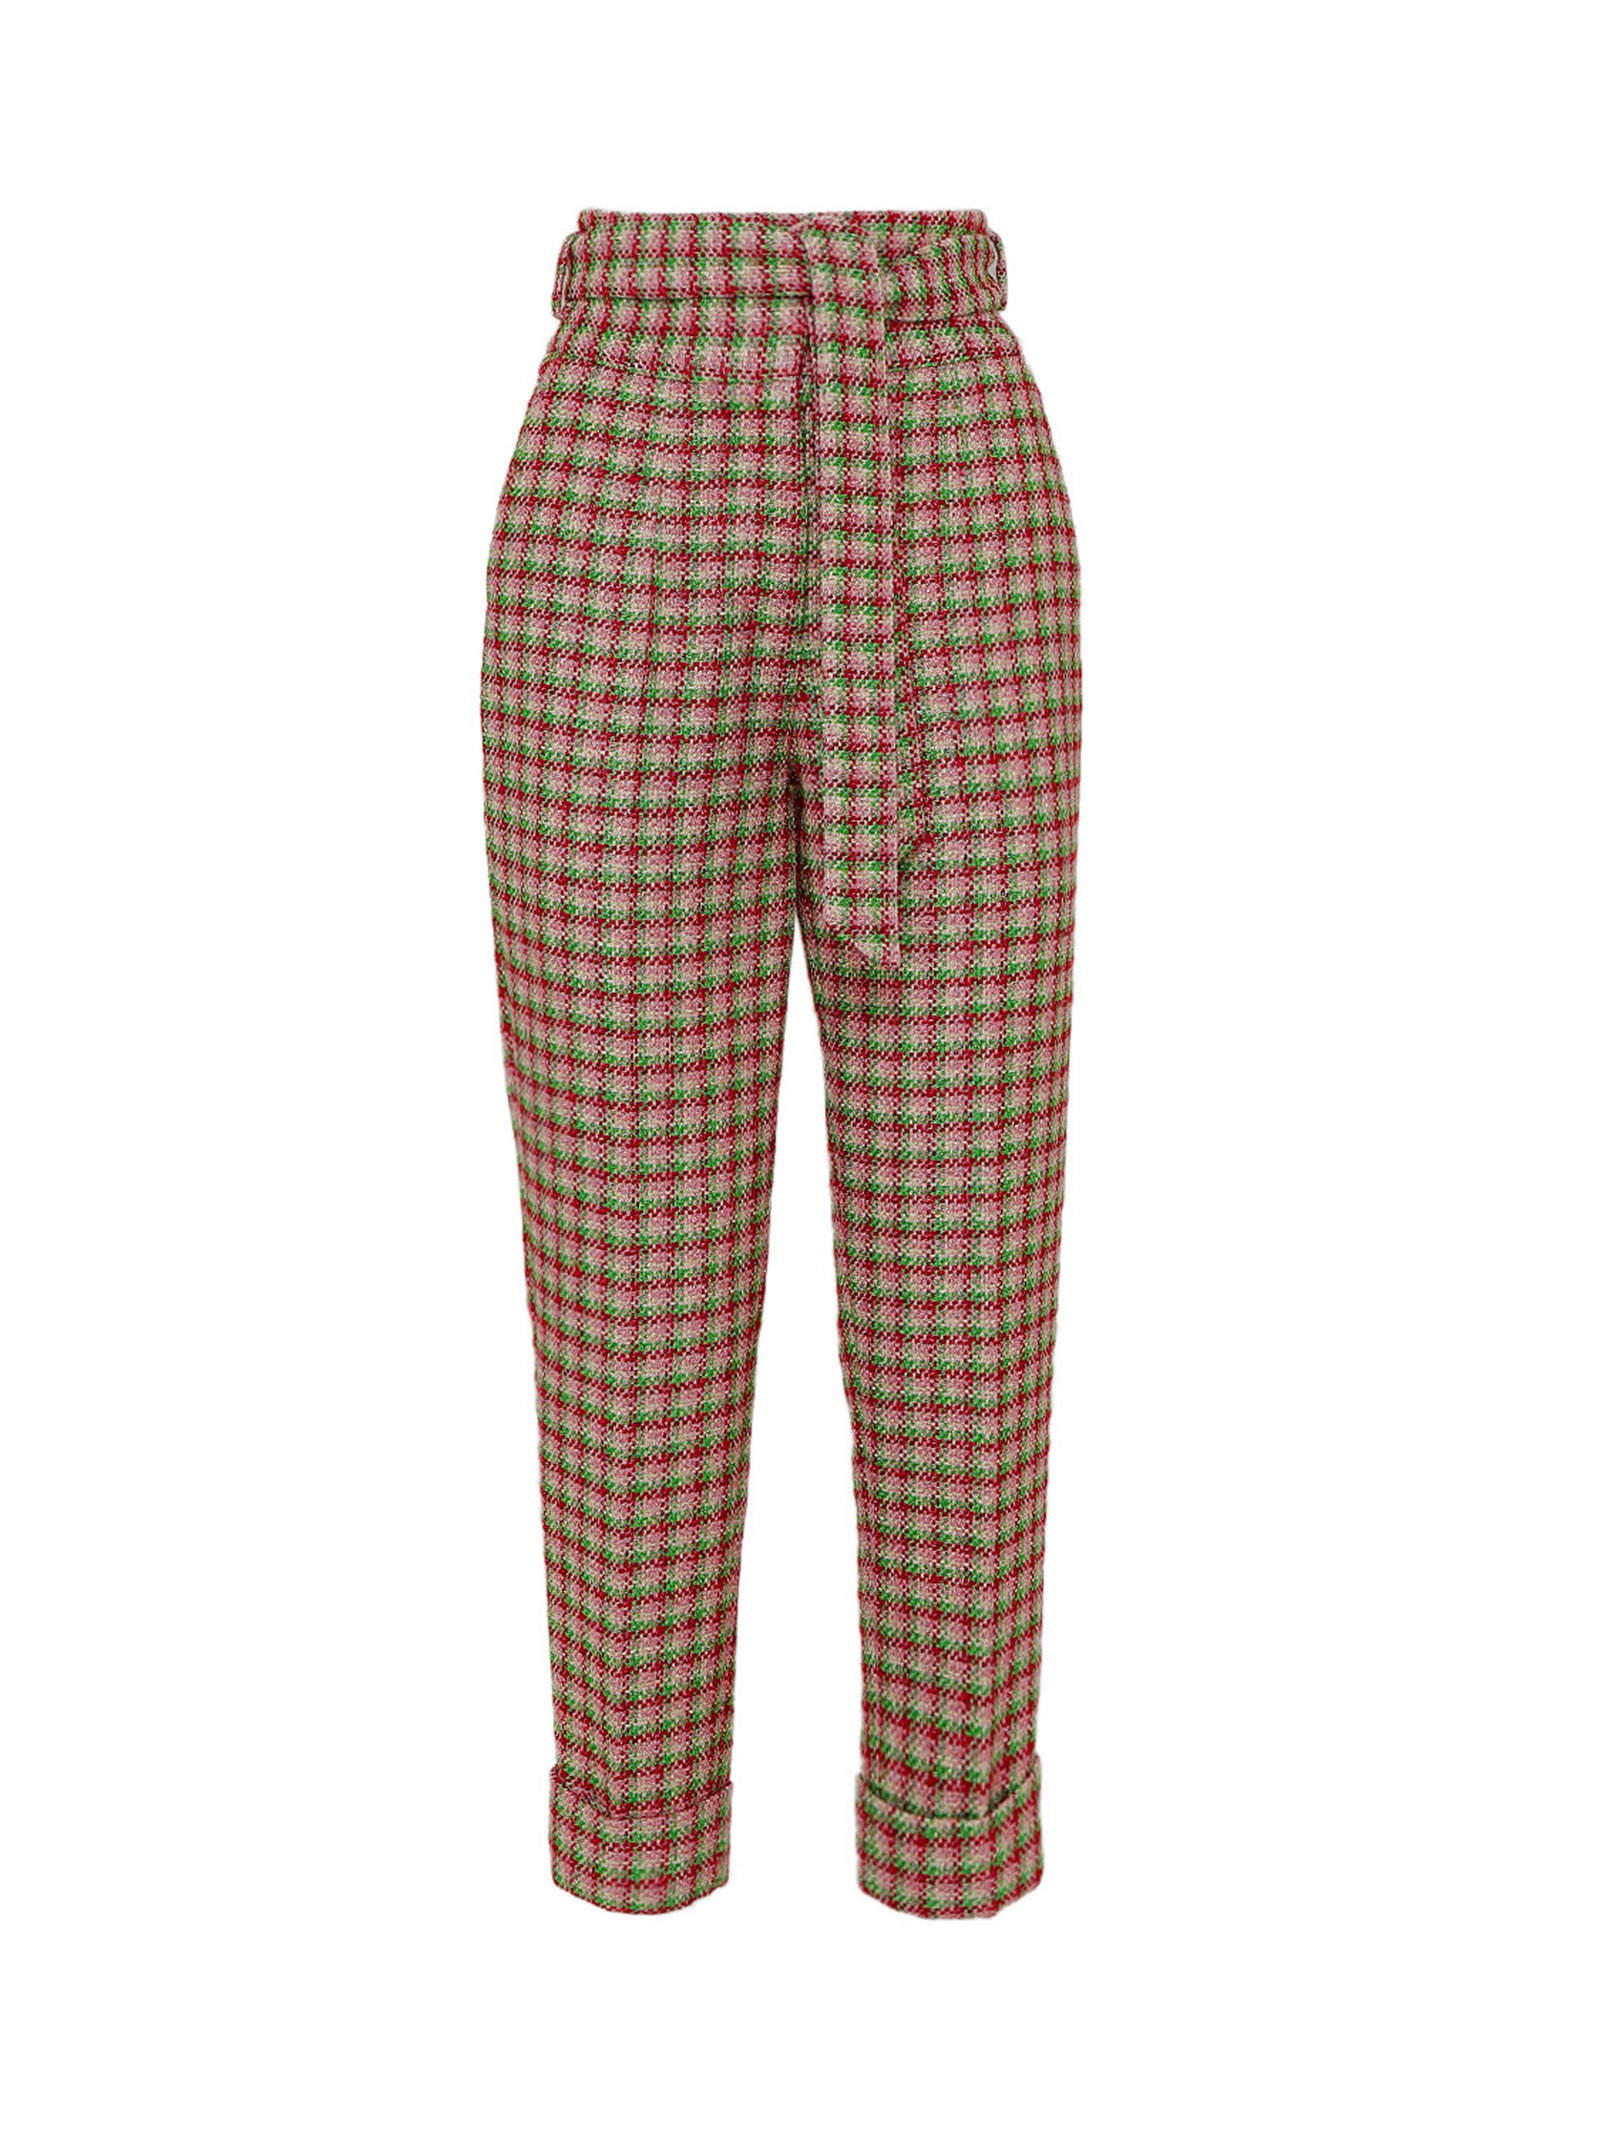 High-waisted Belted Tweed Pants